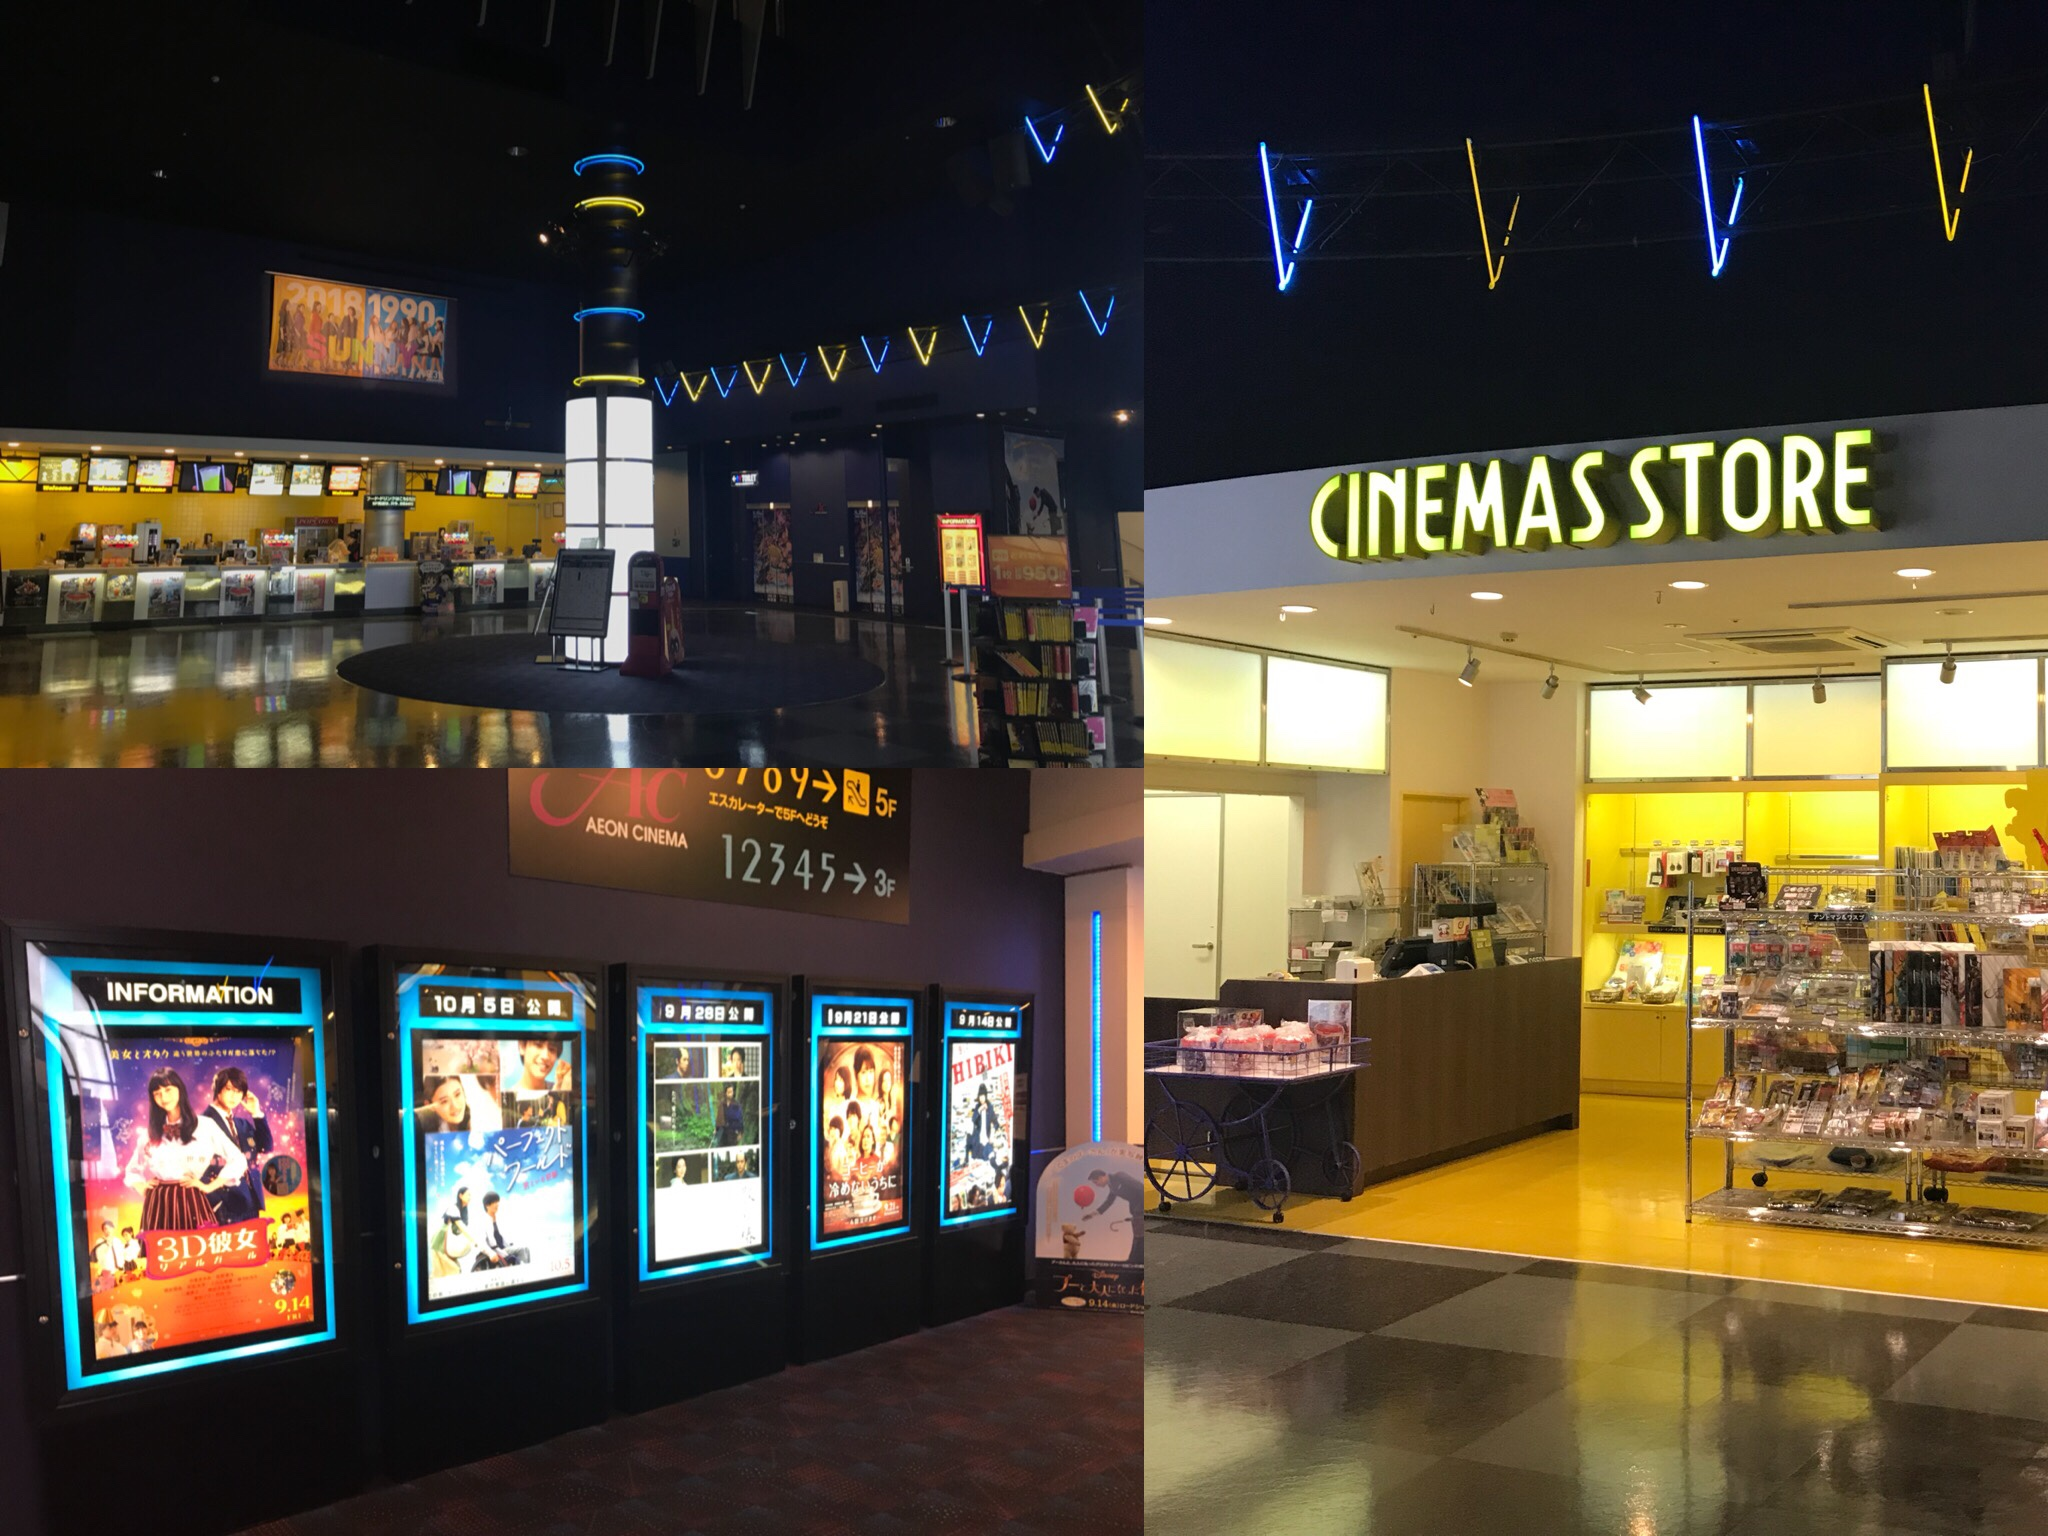 Movie theater in japan